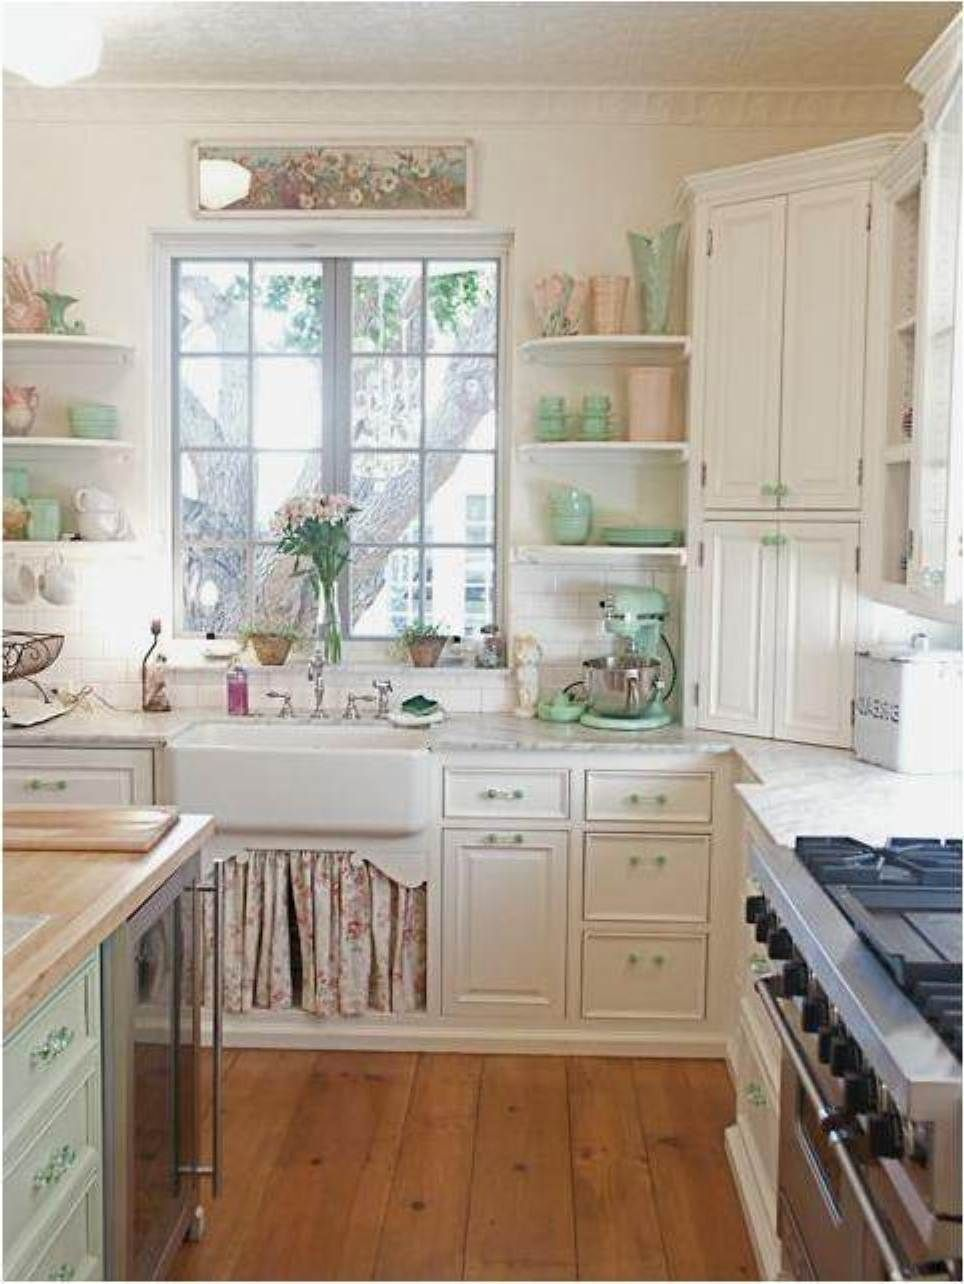 Amazing Cottage Style Kitchens | Better Home and Garden ...